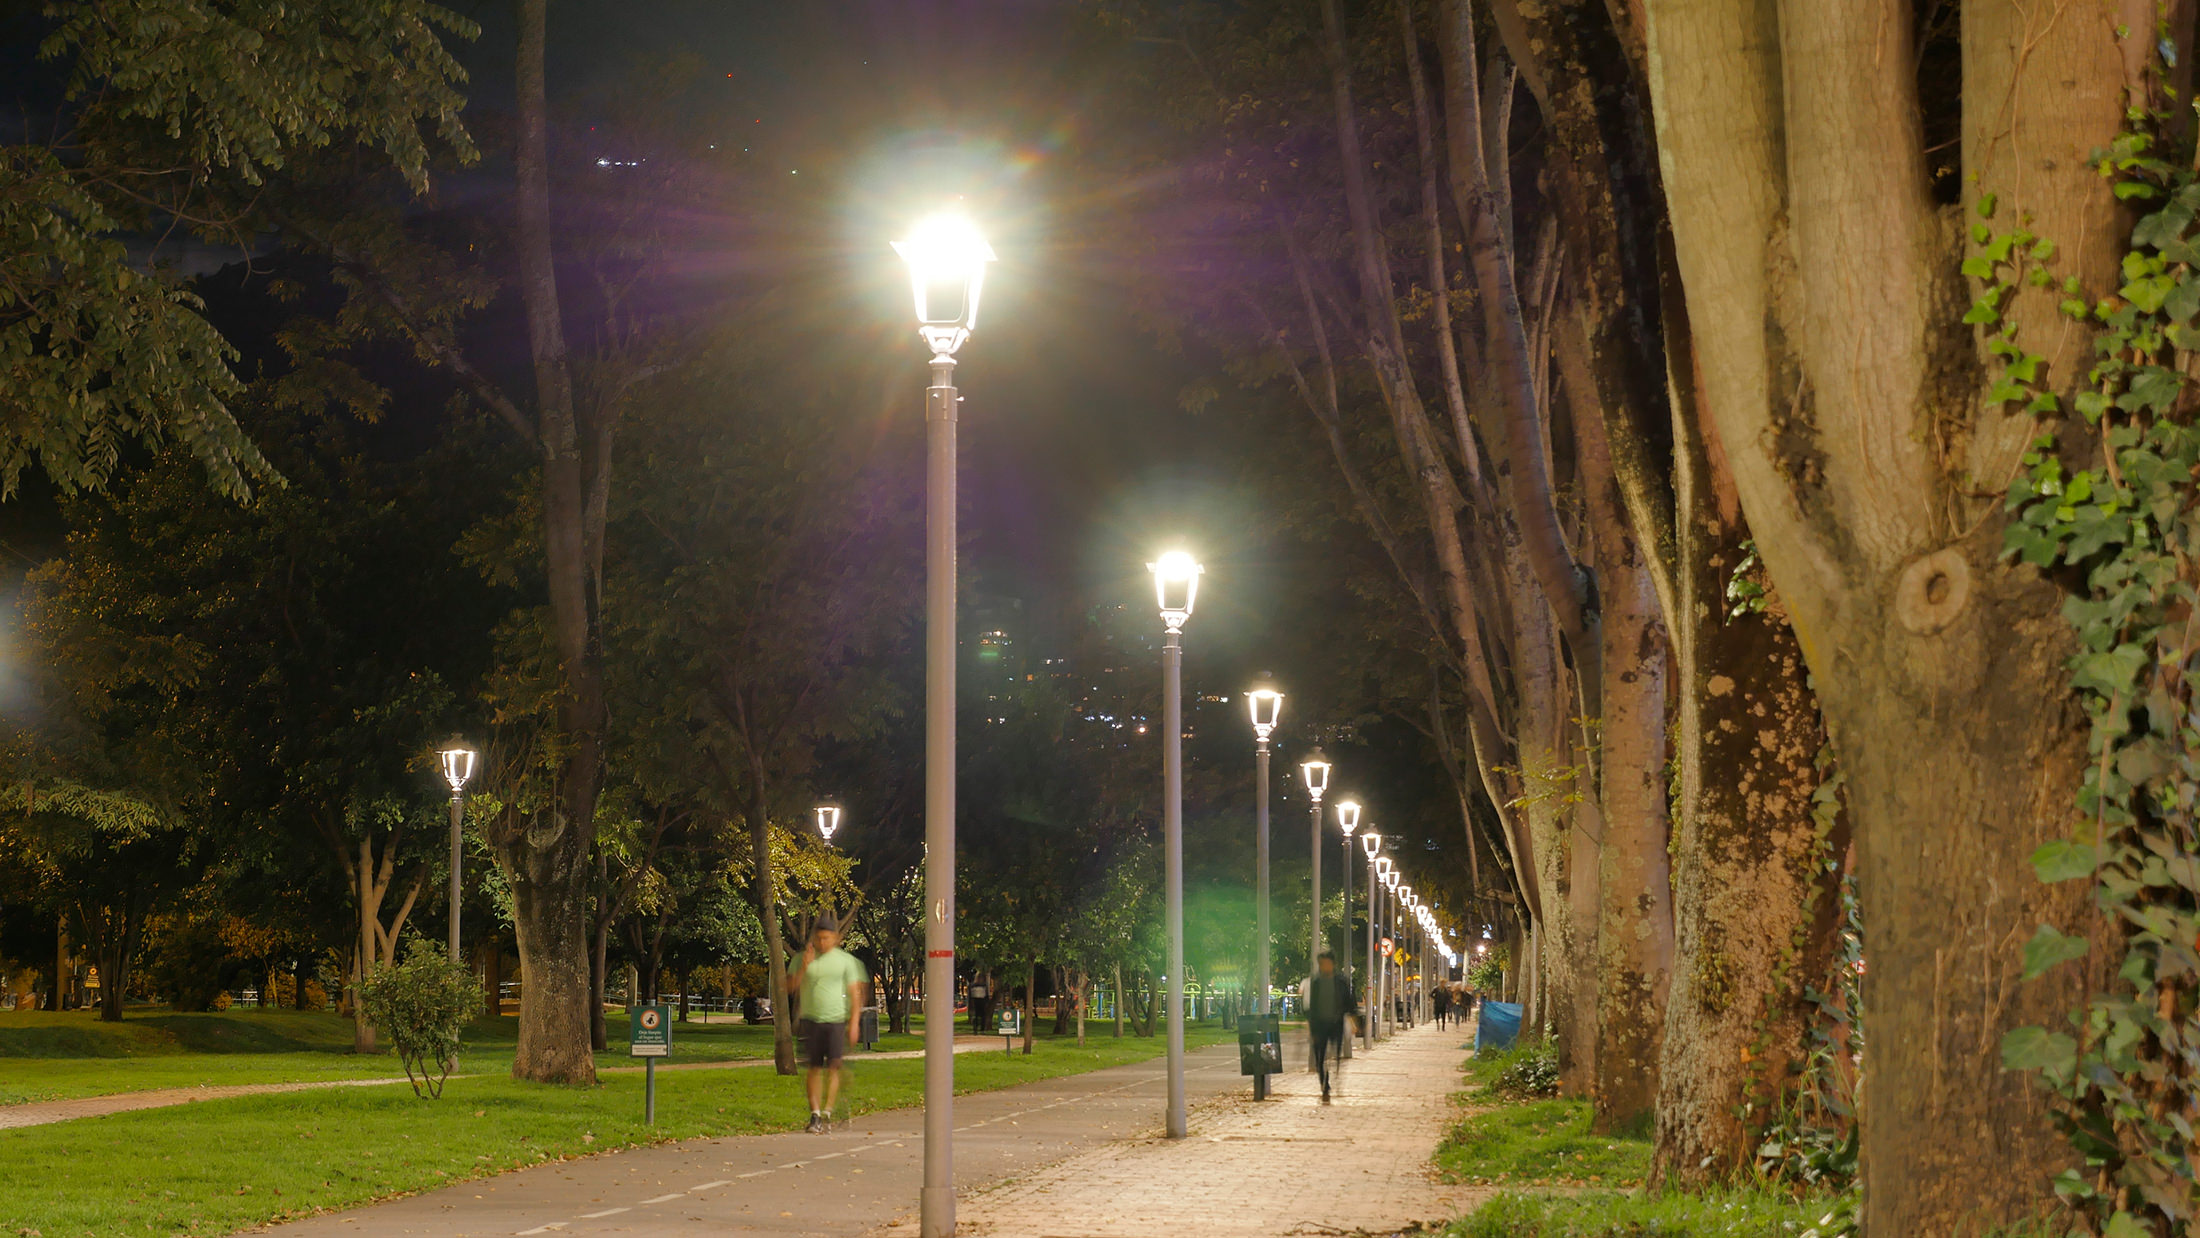 Public Lighting in Bogotá